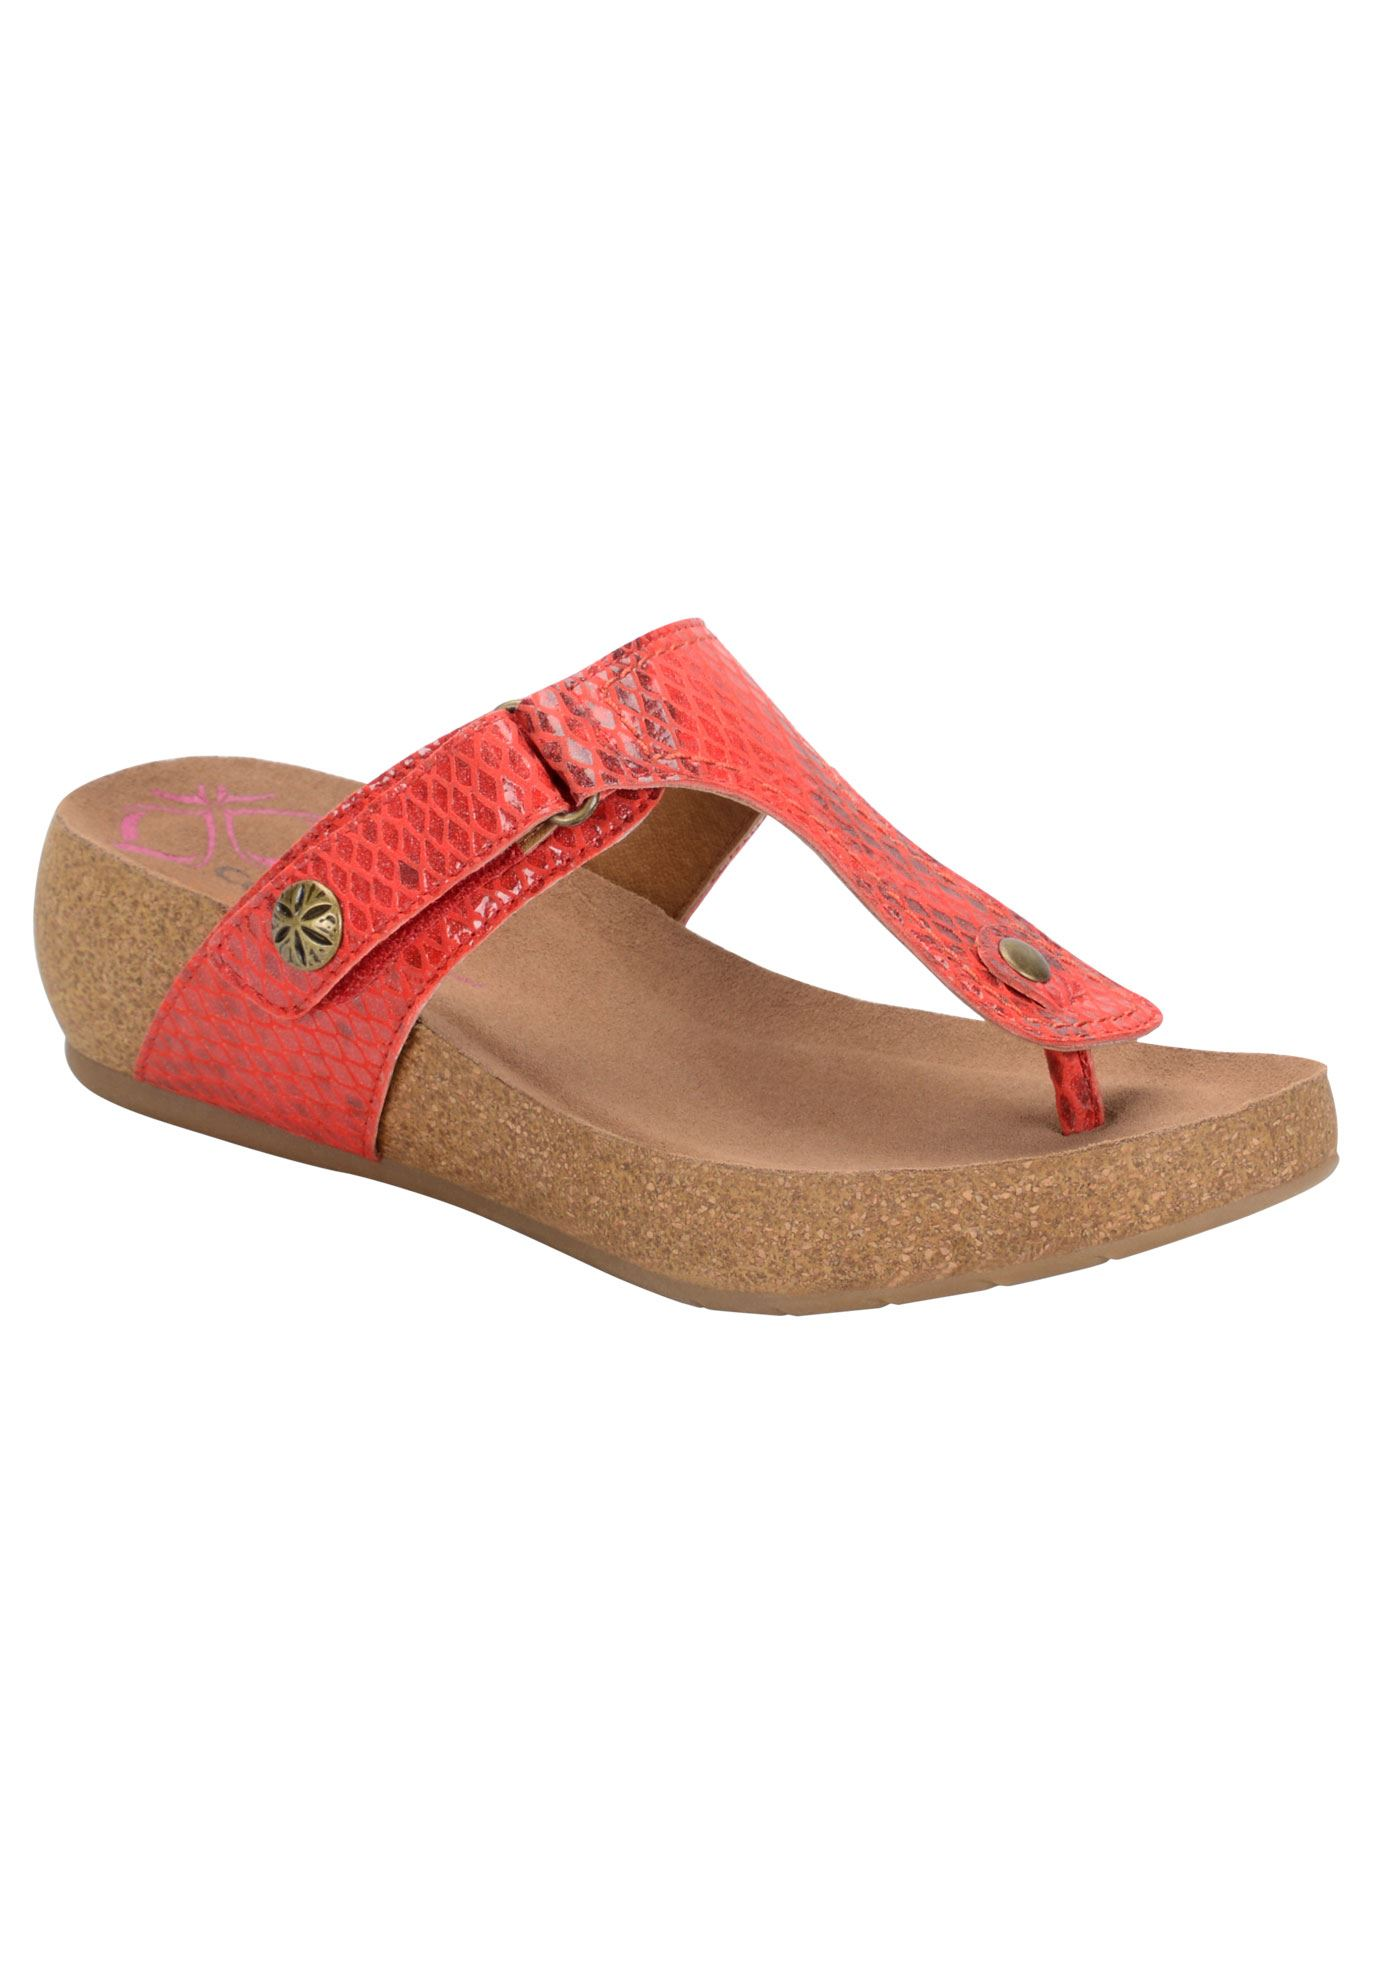 Shantel Sandals by Comfortiva® low cost sale online cheap sale high quality cheap deals sale outlet locations discount low shipping eOiU2l